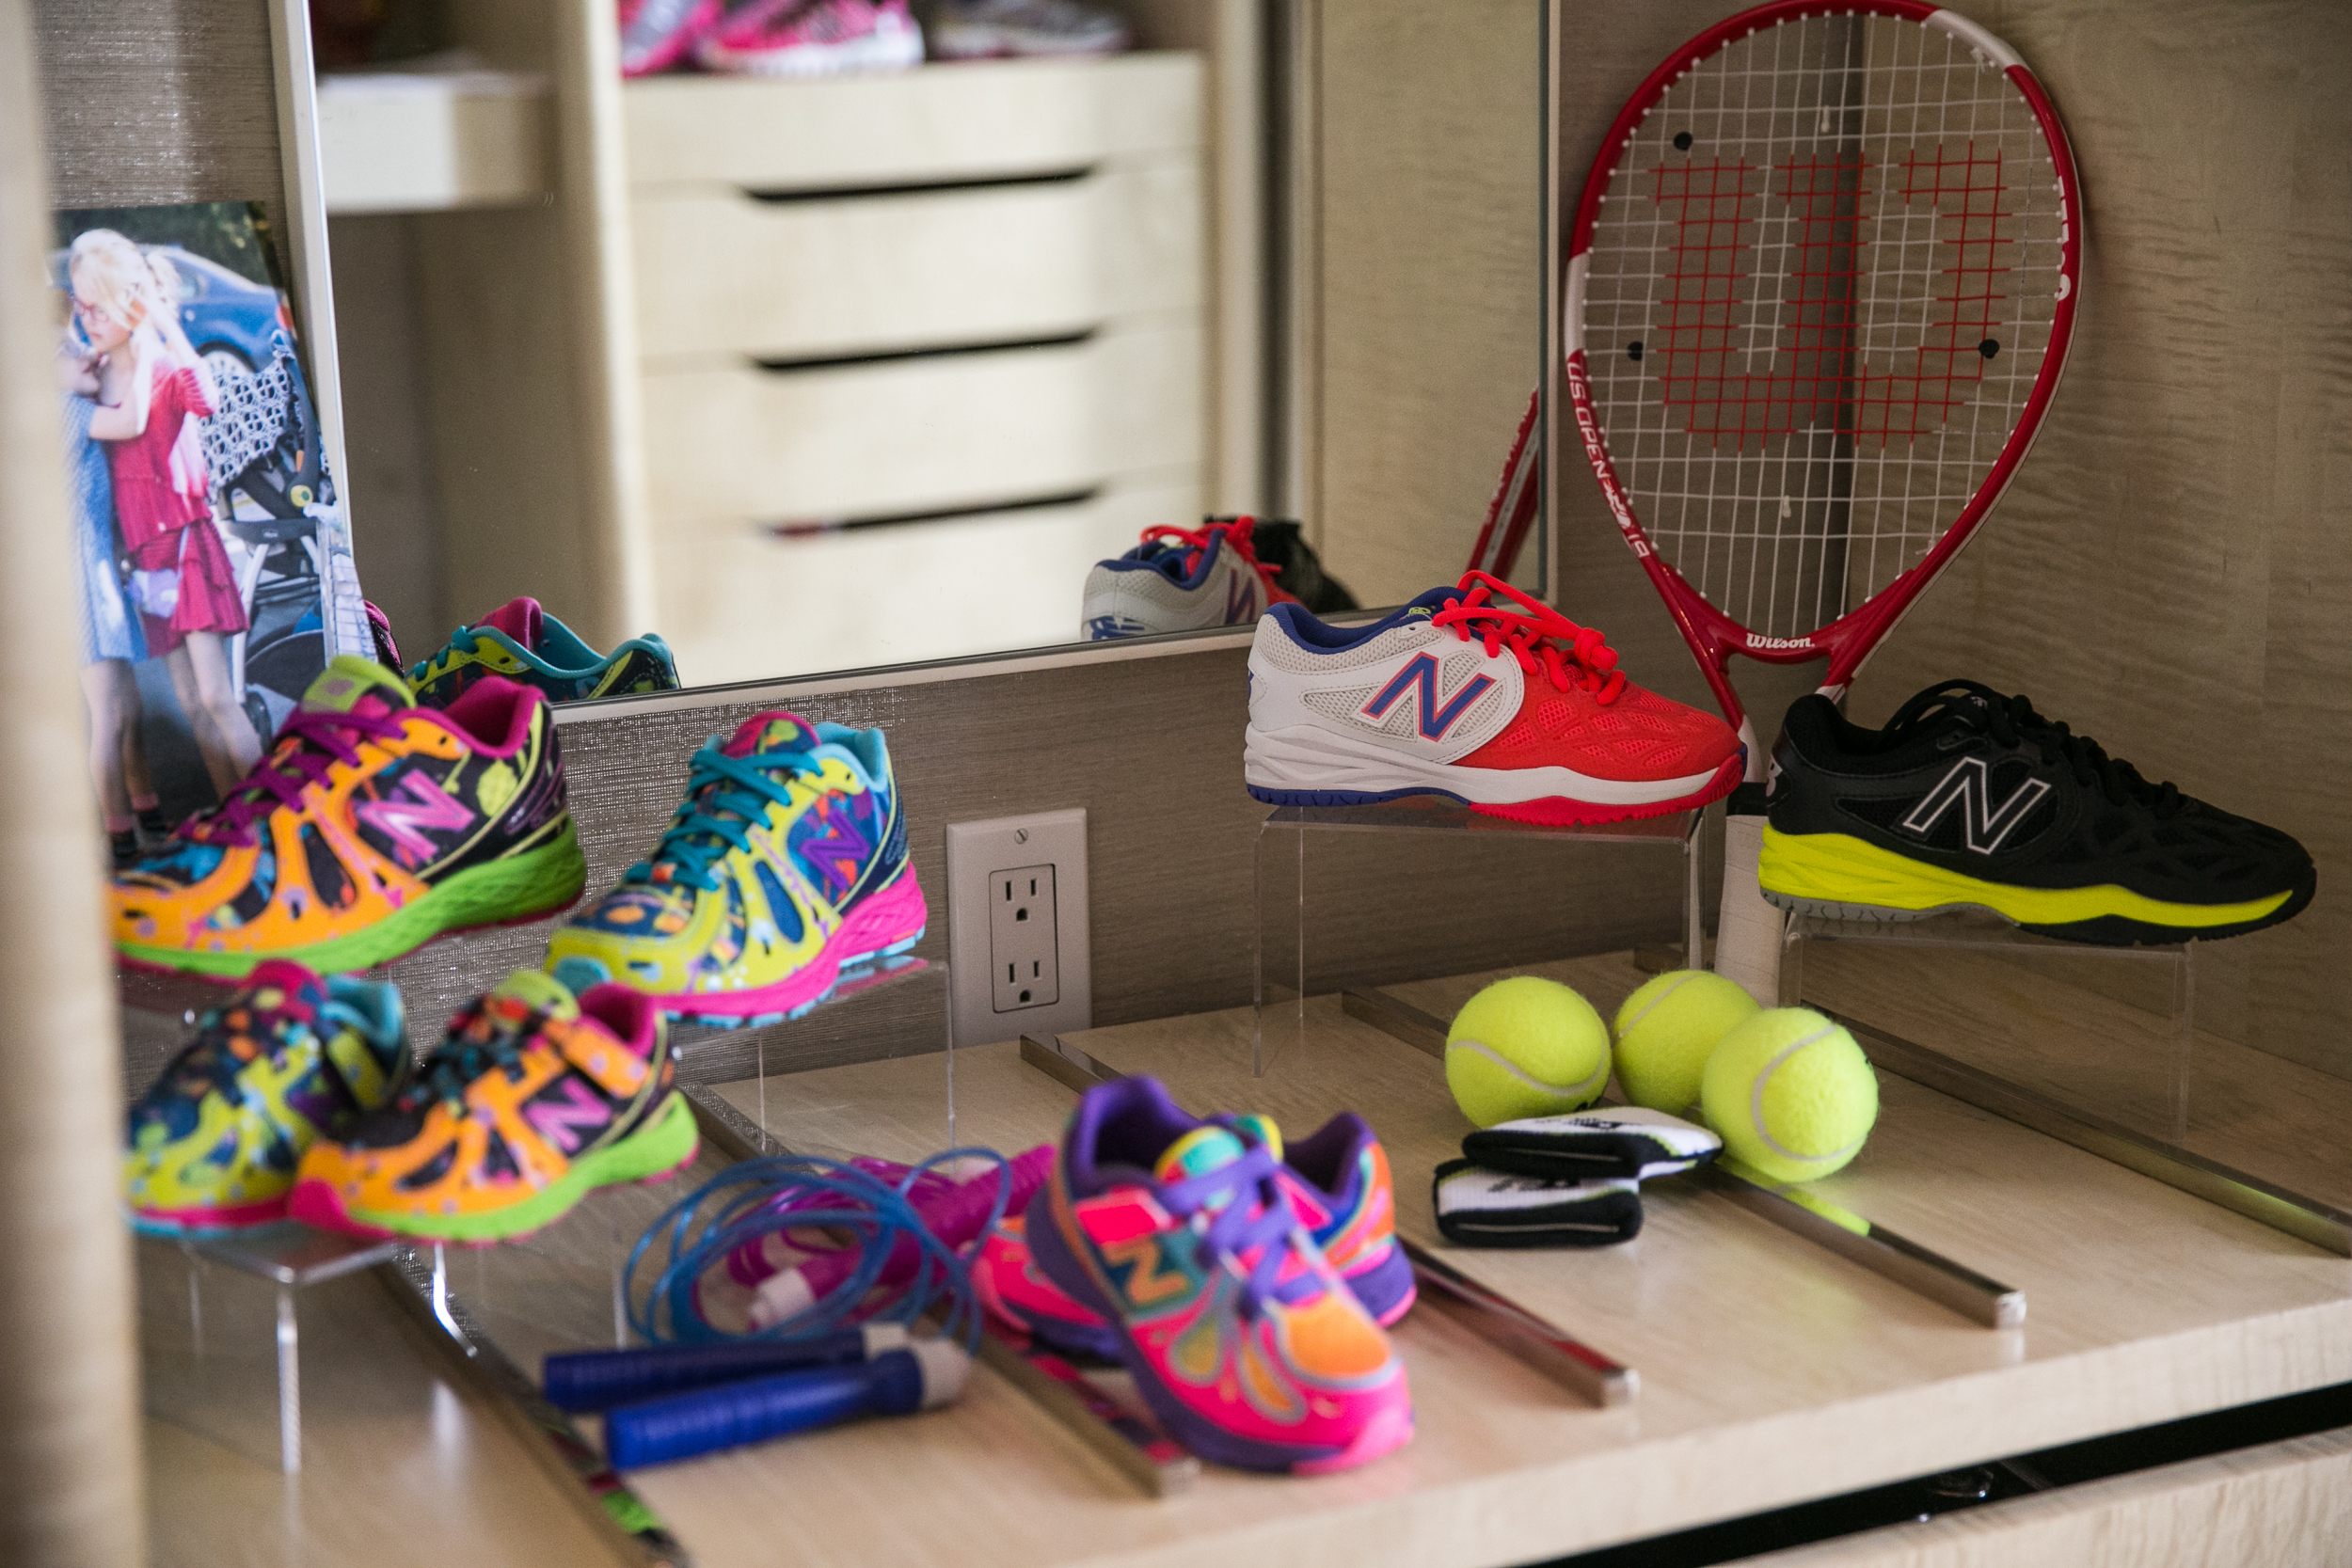 different angle of children's sneakers and tennis racket at cbc parenting house